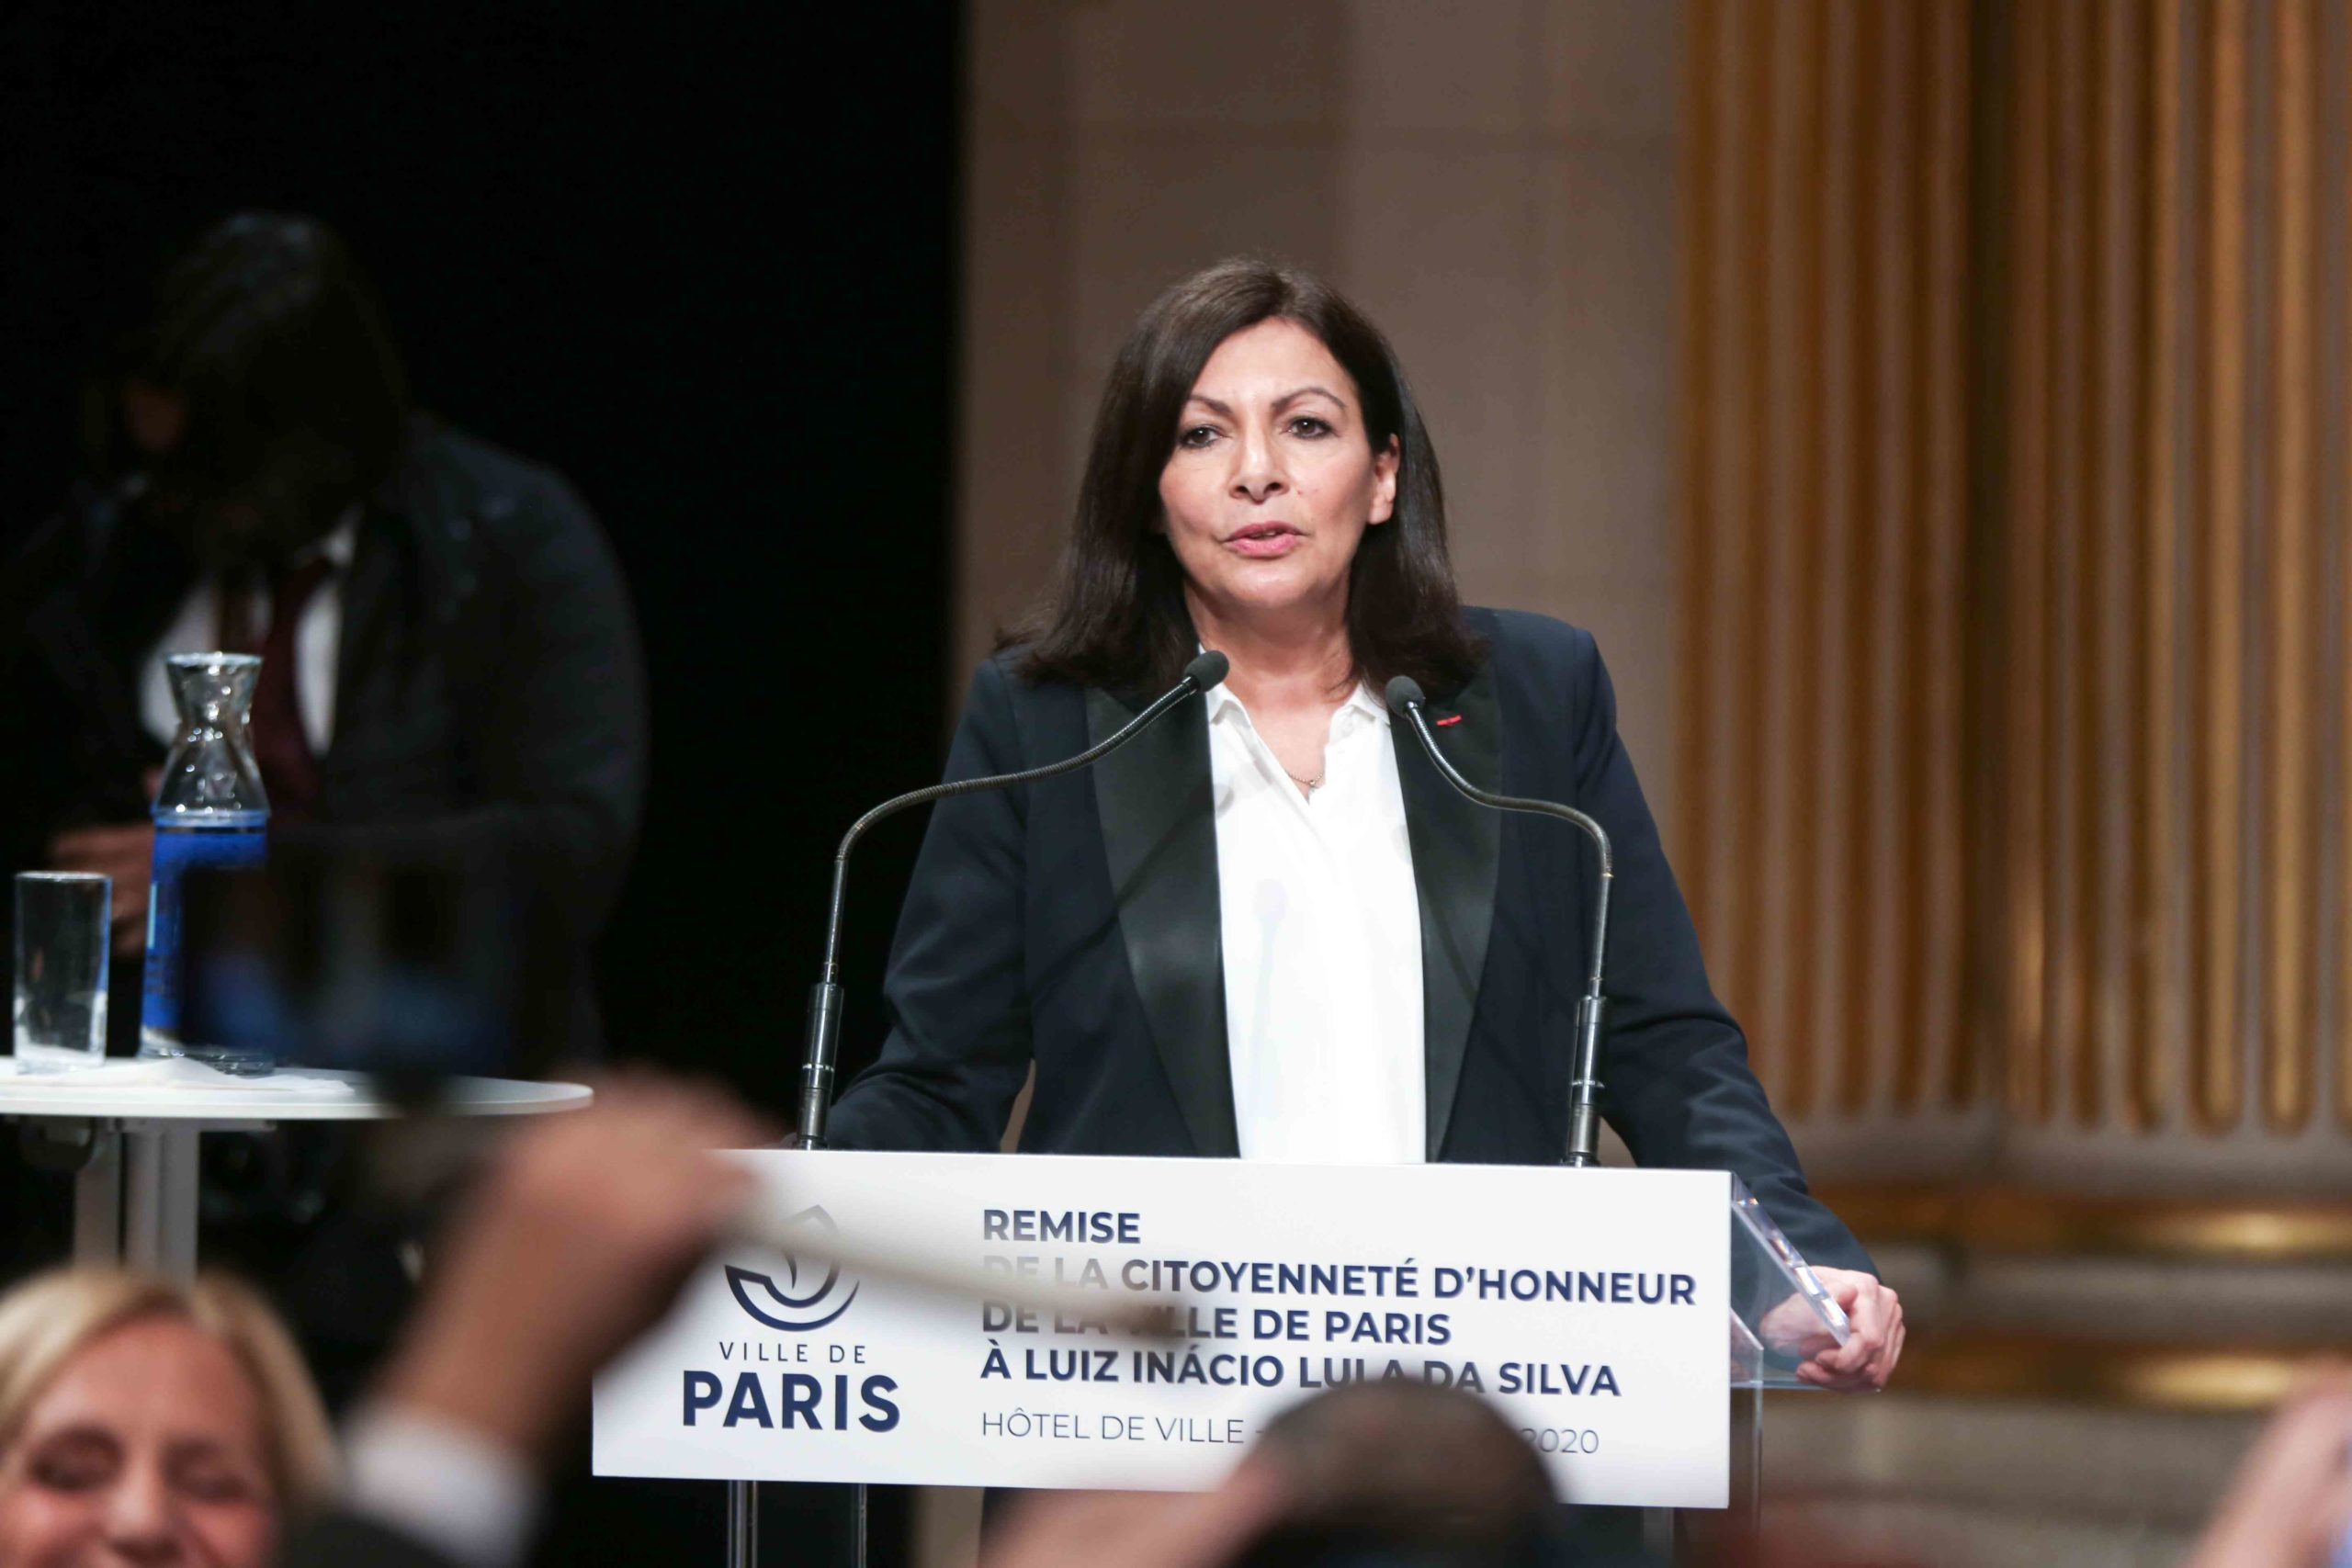 Paris Mayor and candidate for re-election Anne Hidalgo speaks during a ceremony at the City Hall of Paris, on March 2, 2020, during wich former Brazilian president Luiz Inacio Lula da Silva was named  honorary citizen of the city of Paris.